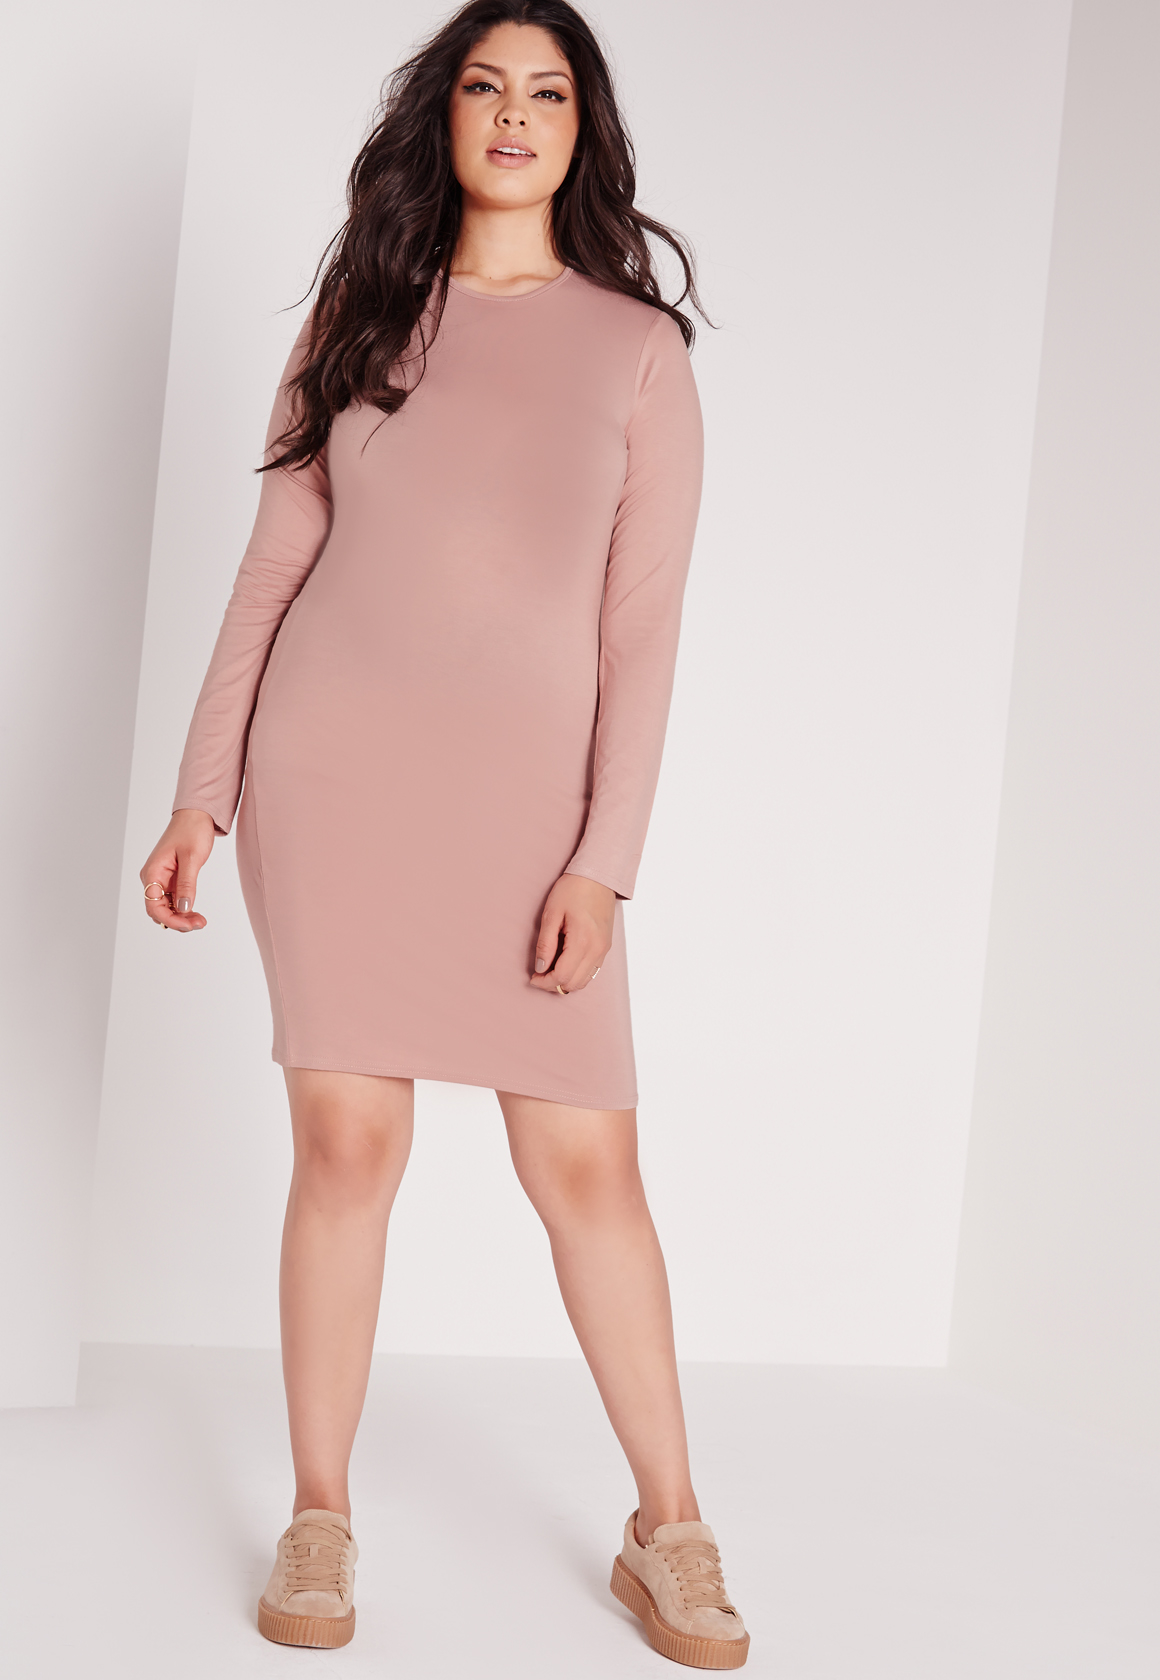 Lyst - Missguided Plus Size Long Sleeve Bodycon Dress Pink in Pink